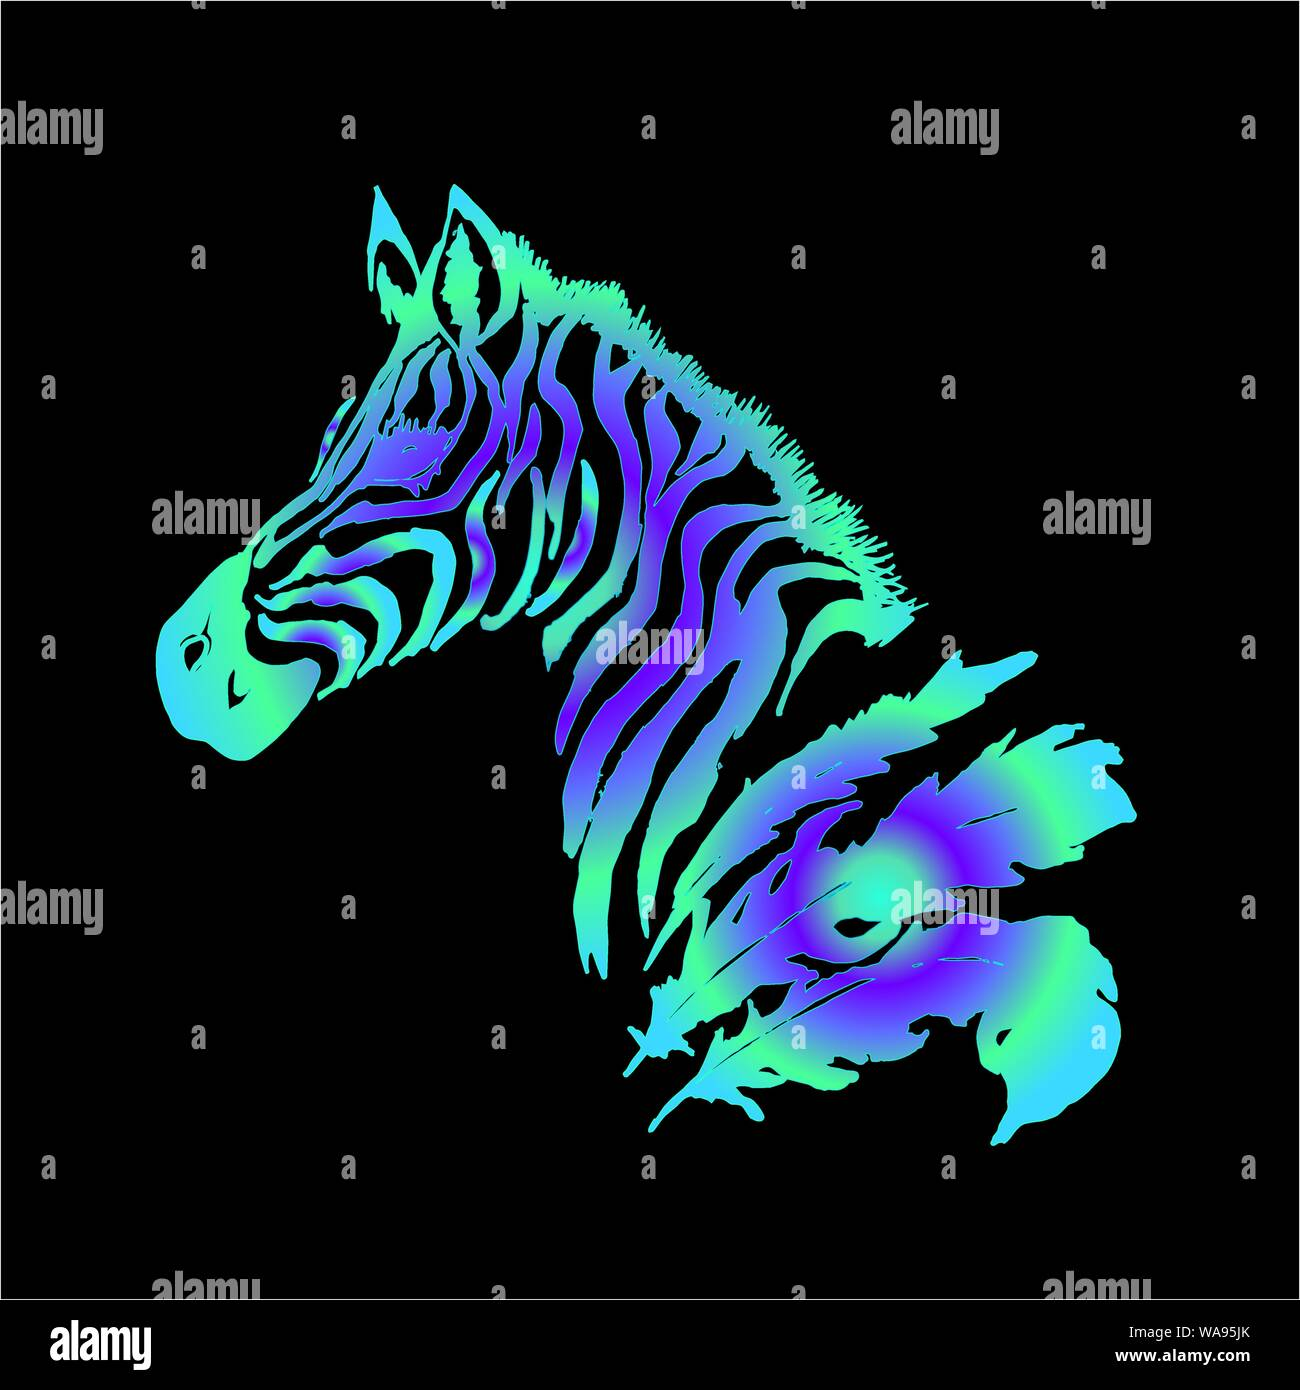 Page 3 American Indian Horse Drawing High Resolution Stock Photography And Images Alamy